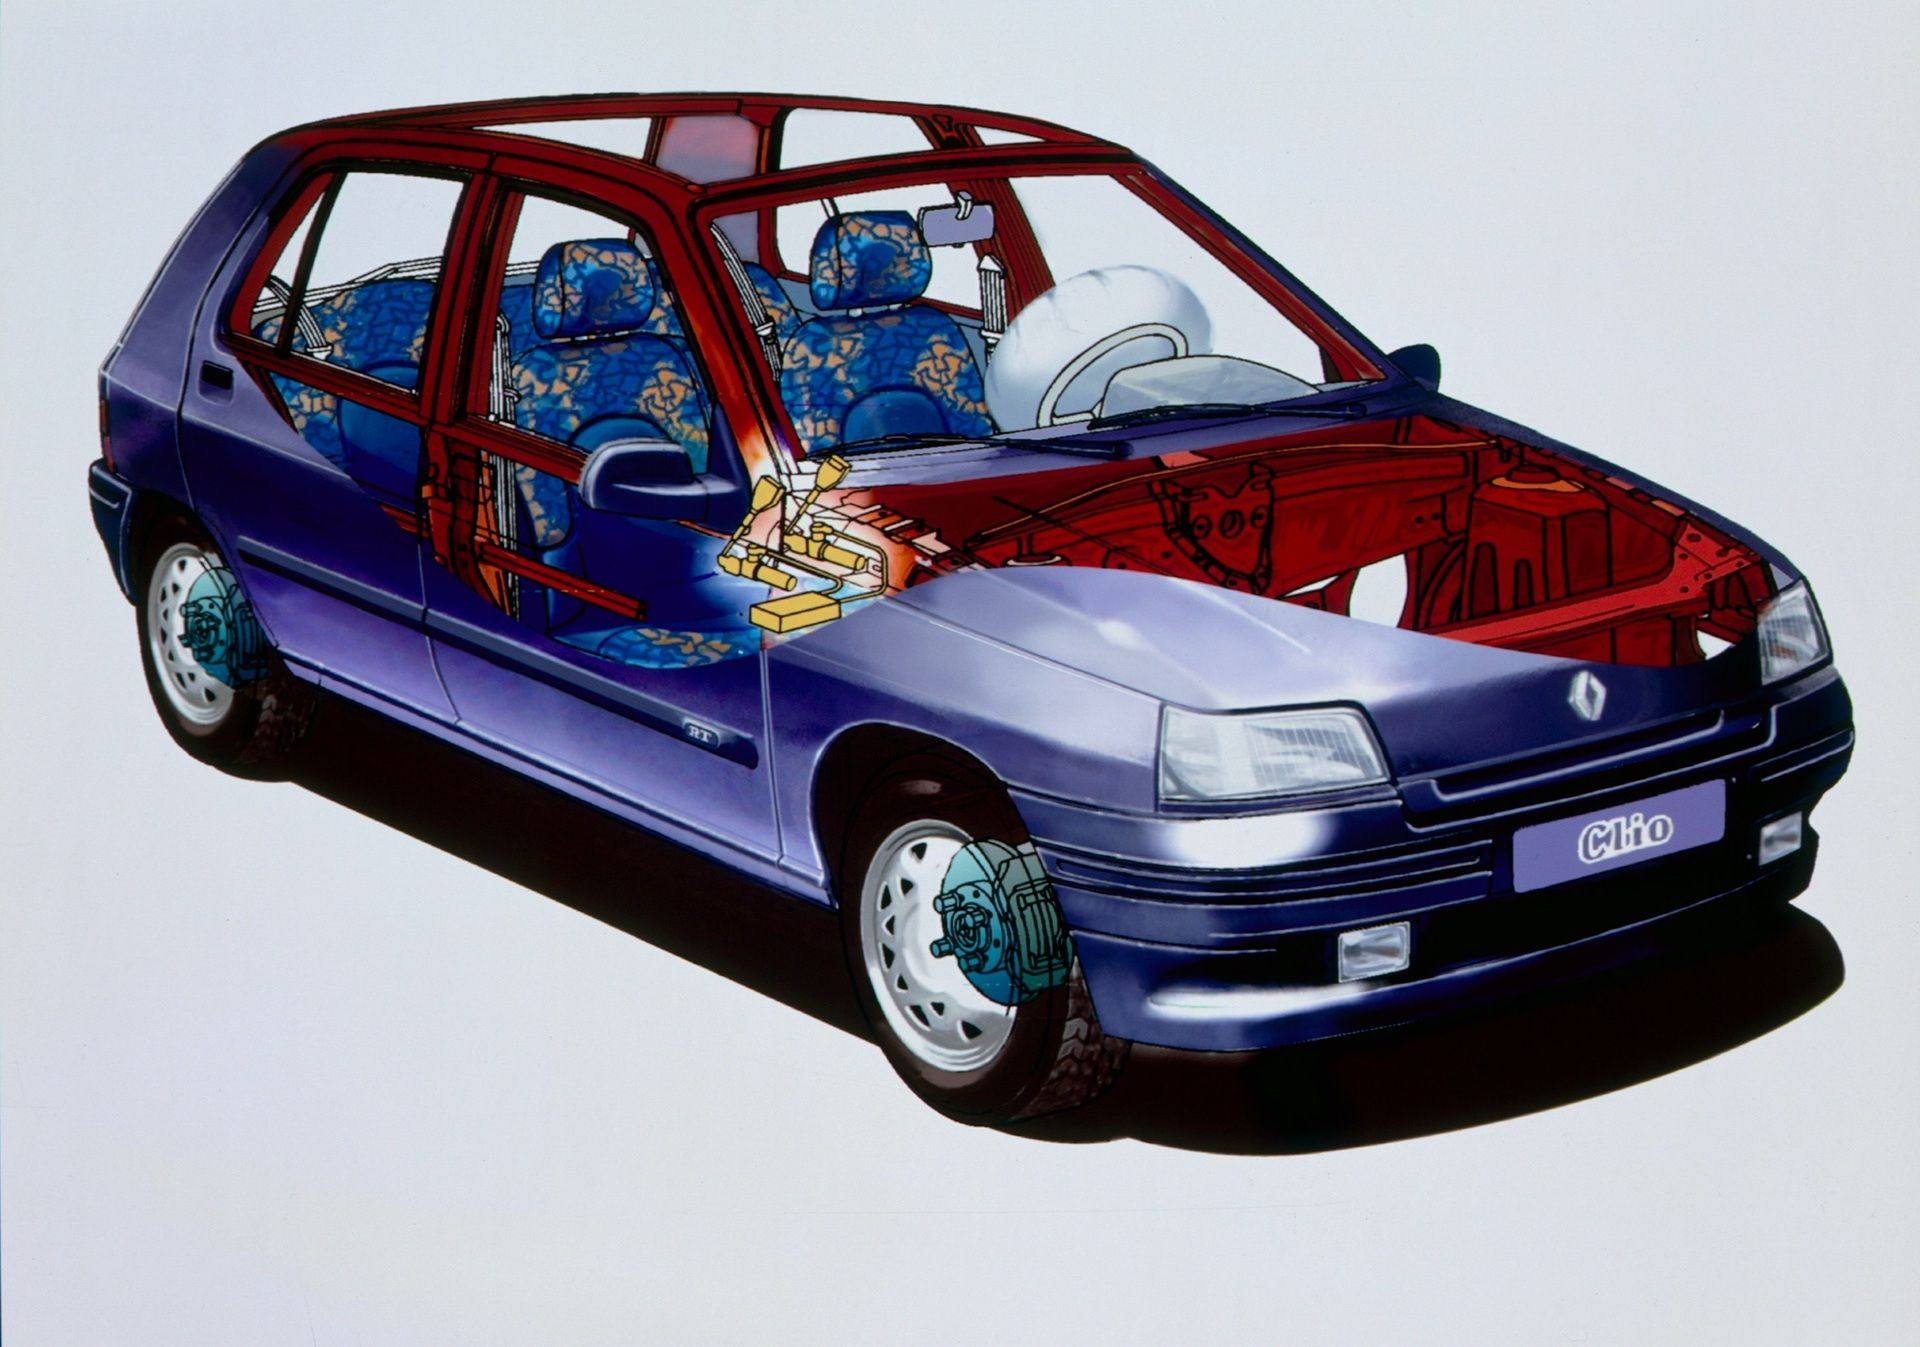 2020-30-years-of-Renault-CLIO-Renault-CLIO-I-1990-1999-15